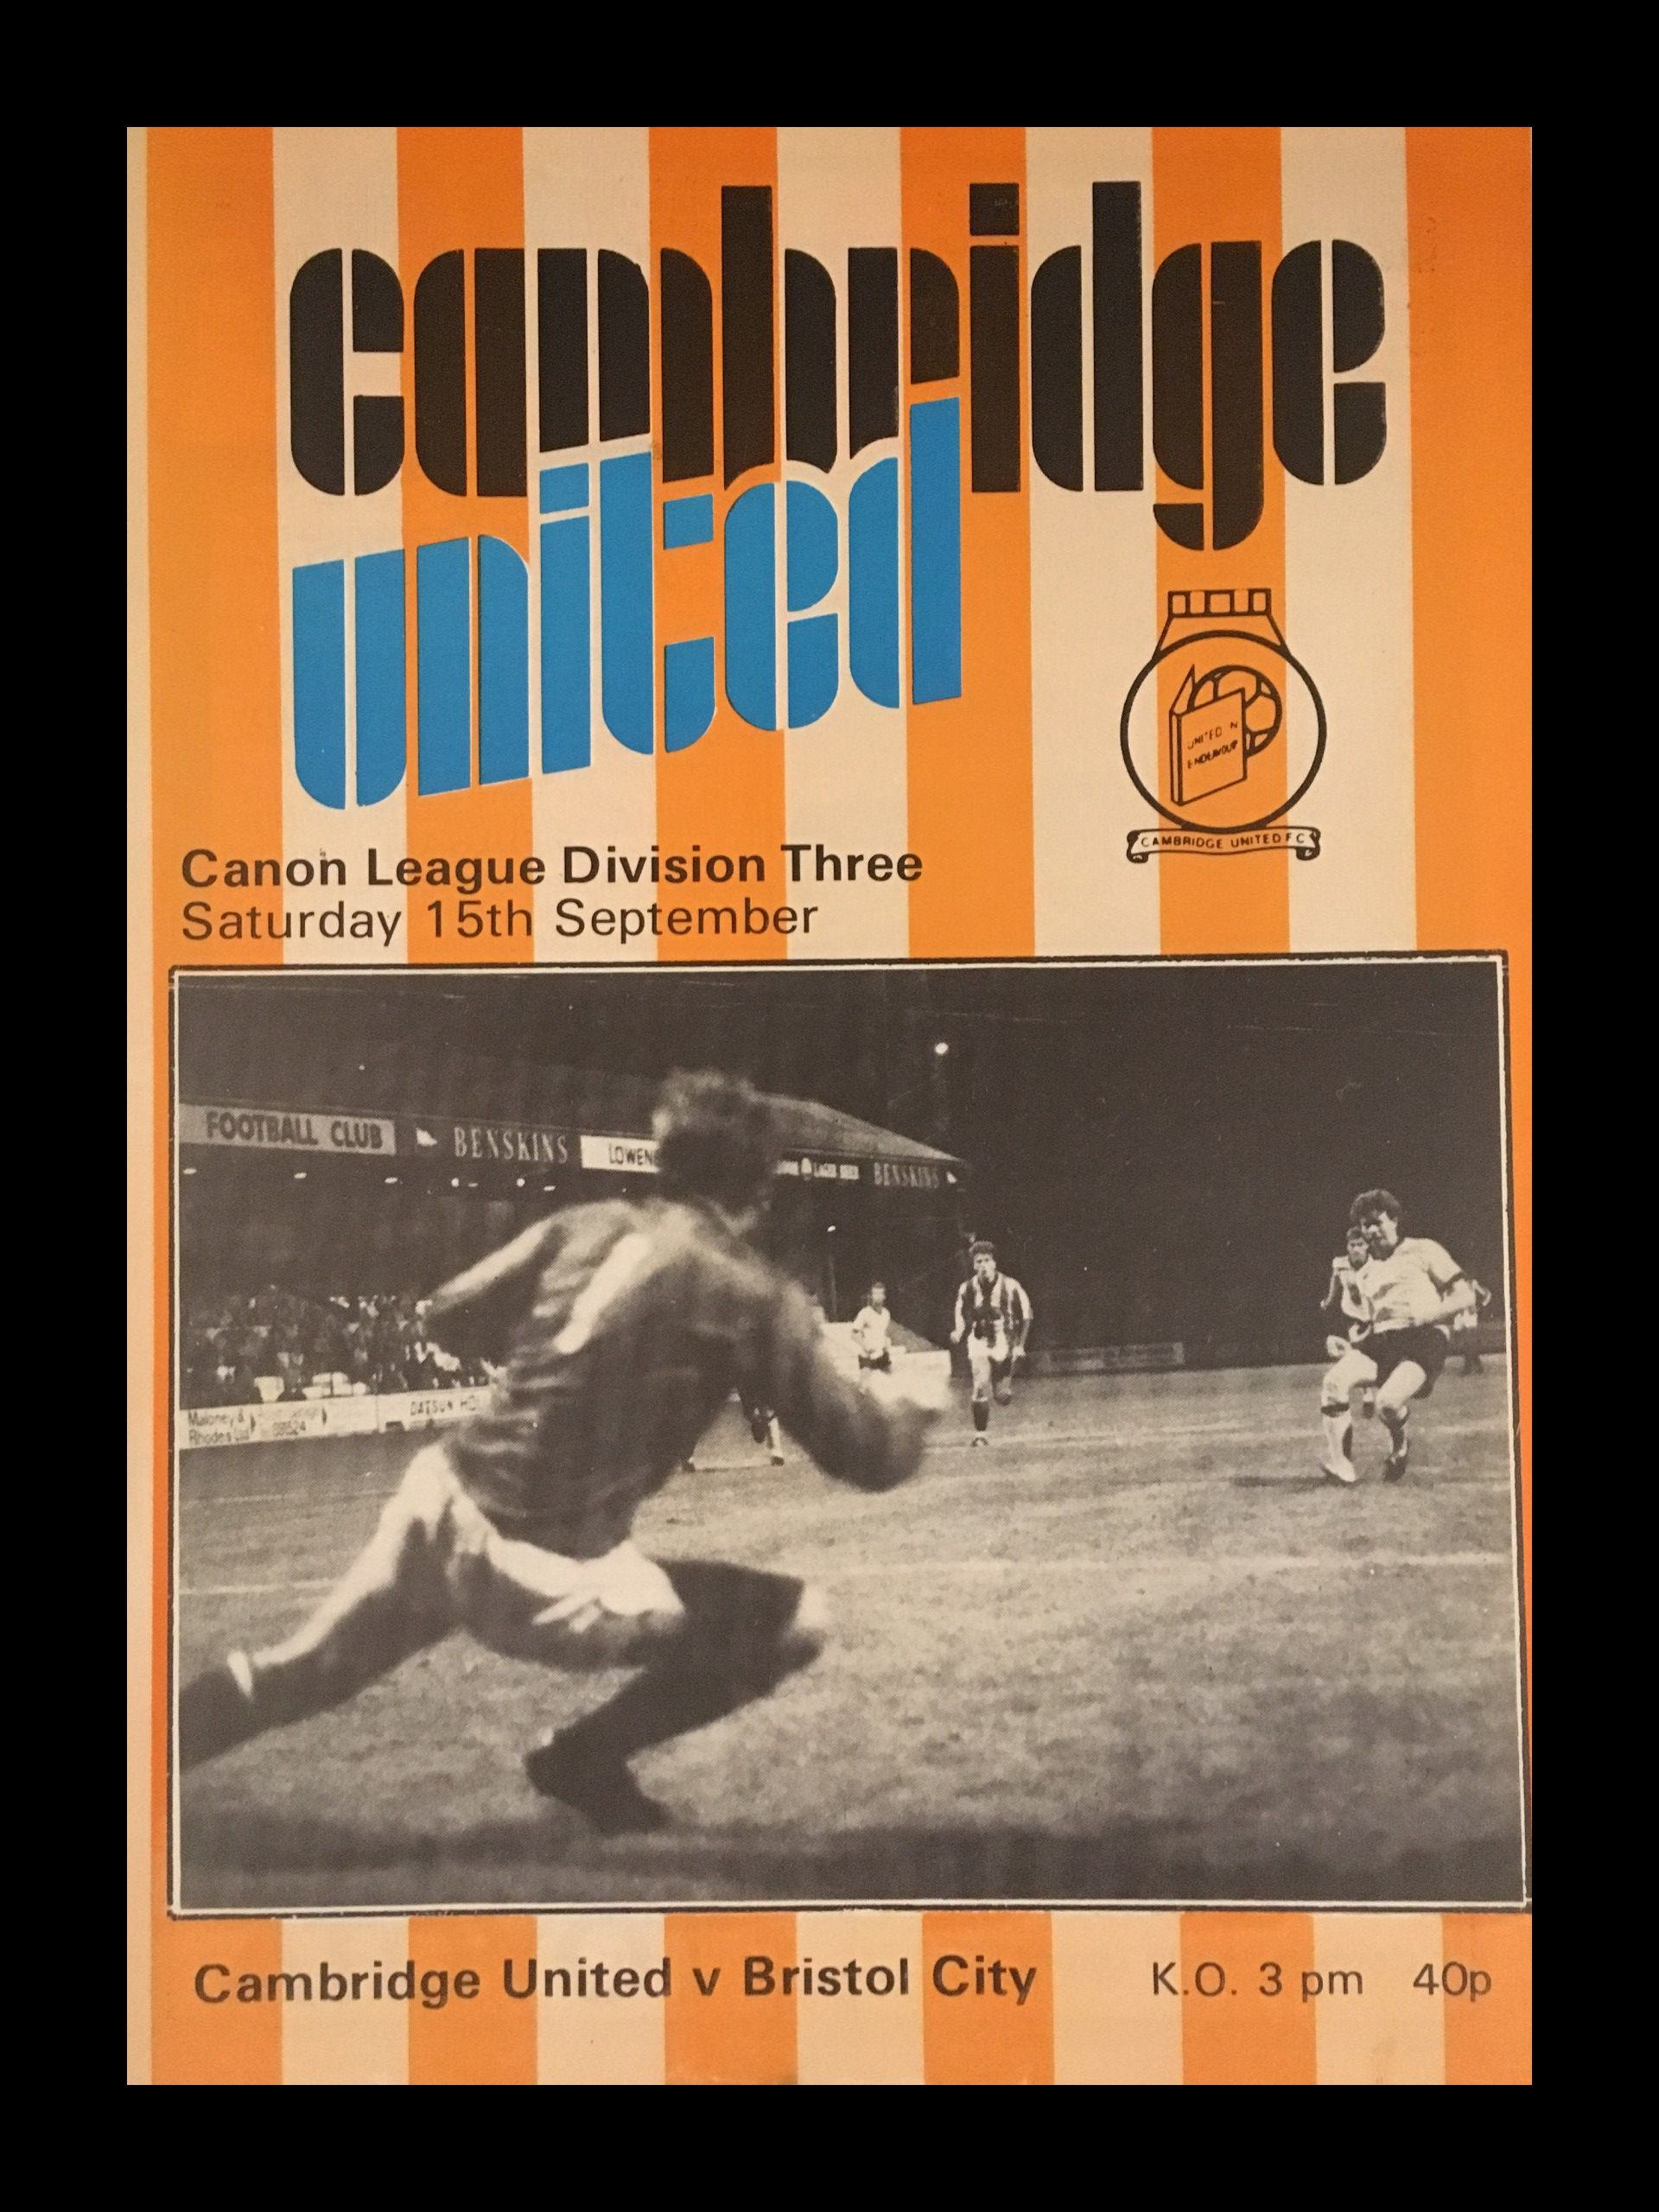 Cambridge United v Bristol City 15-09-84 Programme